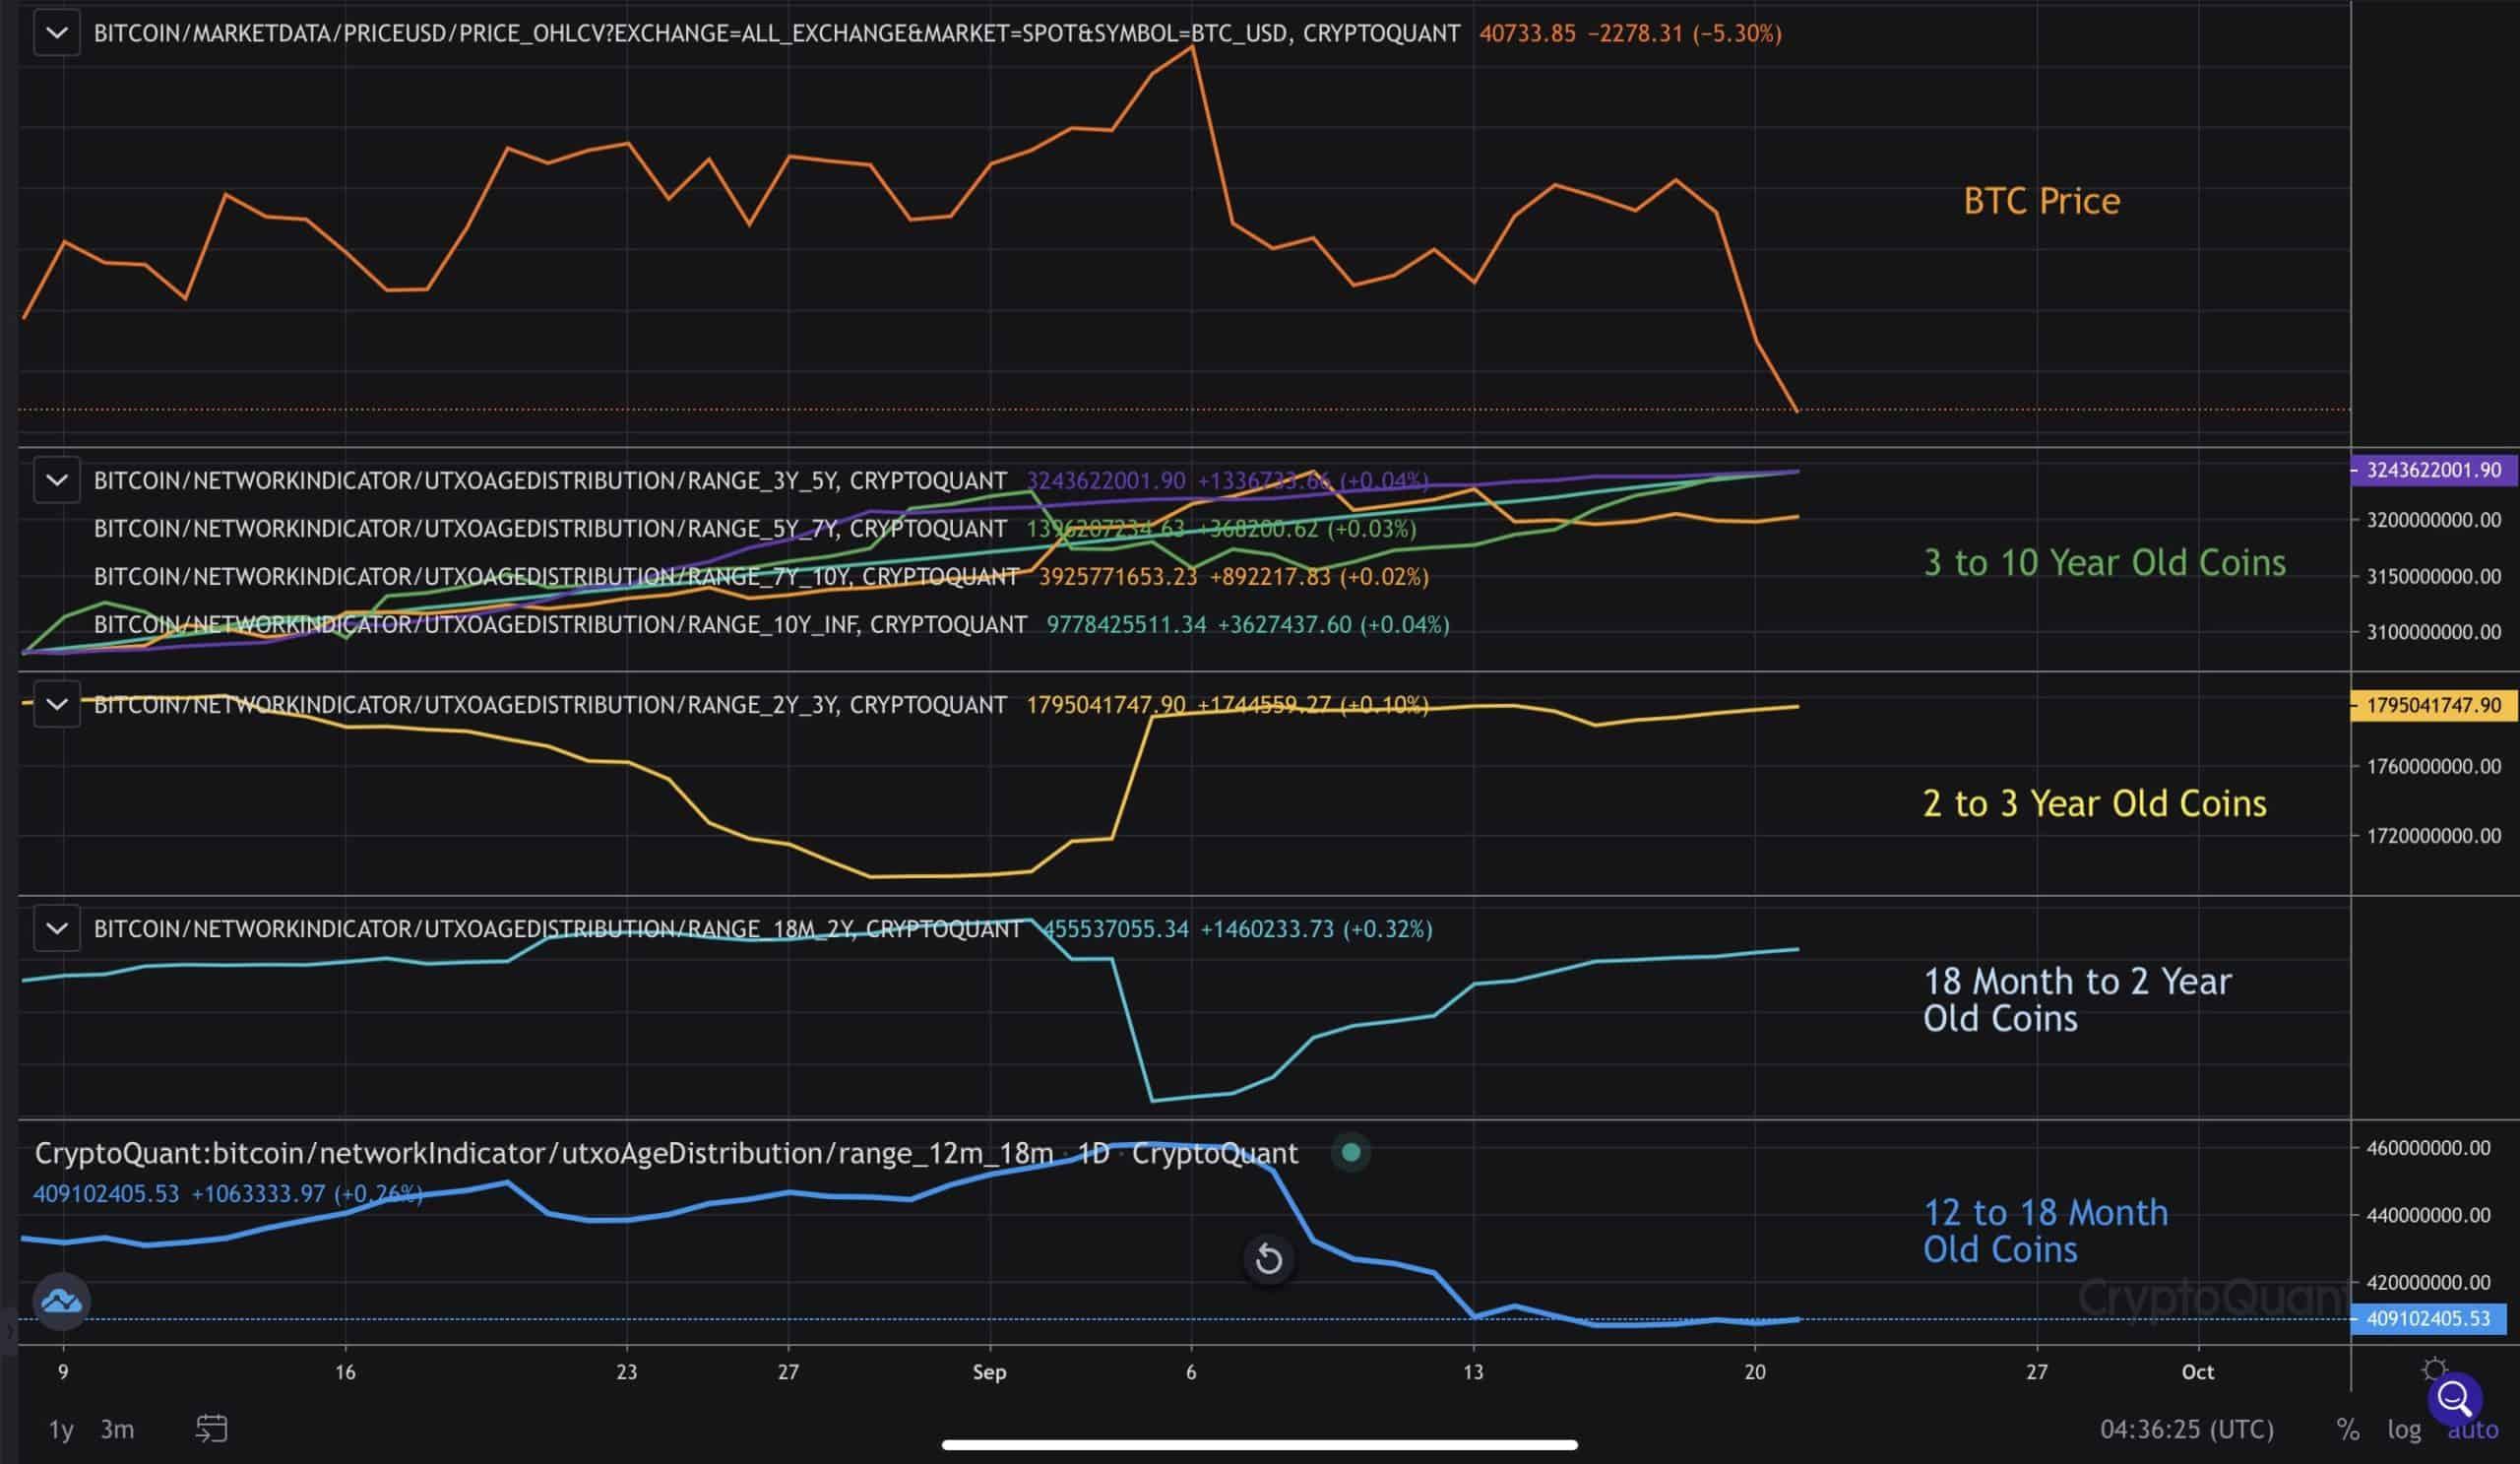 Chart by CryptoQuant/TradingView